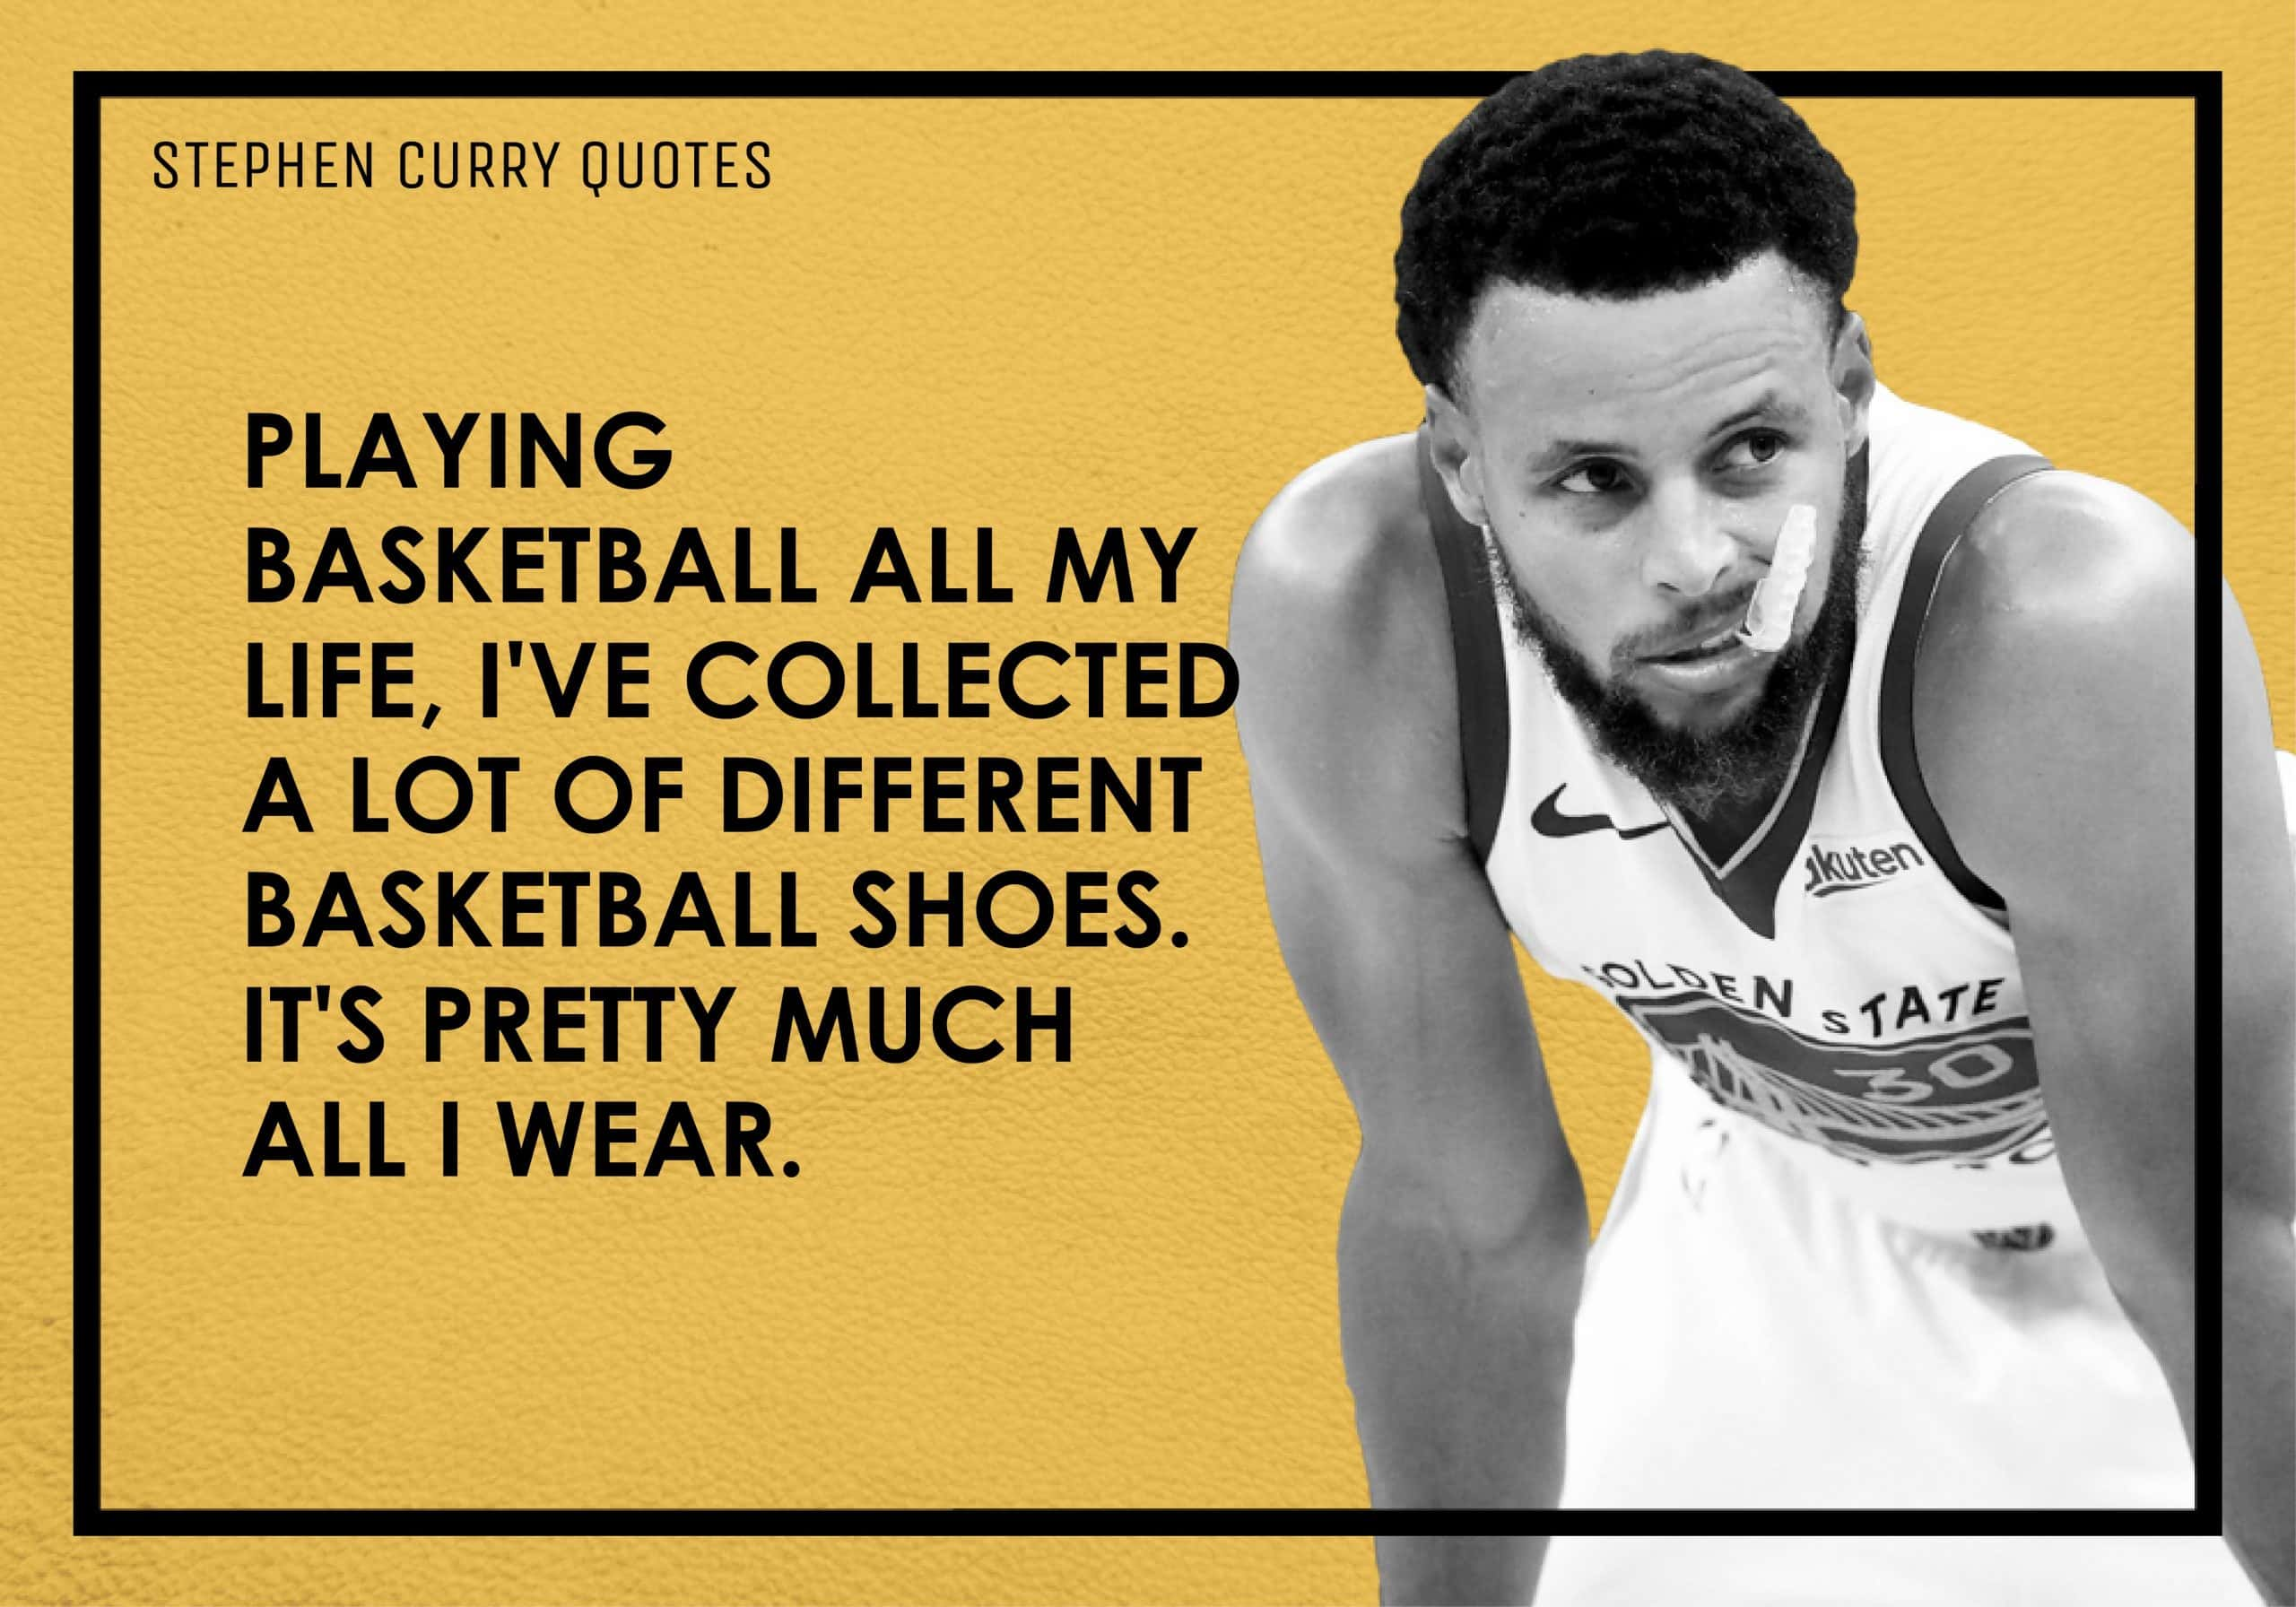 Stephen Curry Quotes (12)